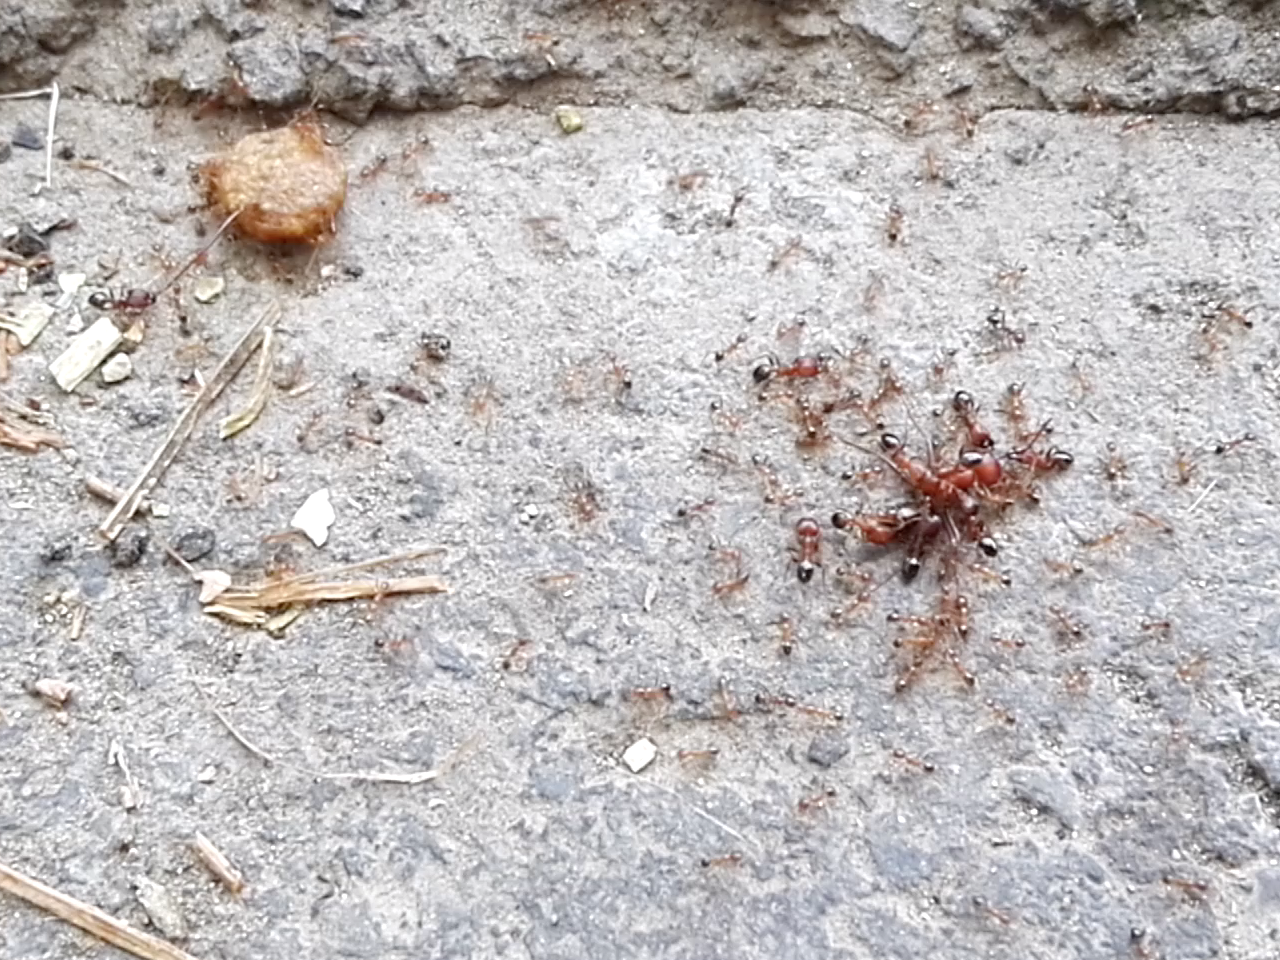 Death of an ant